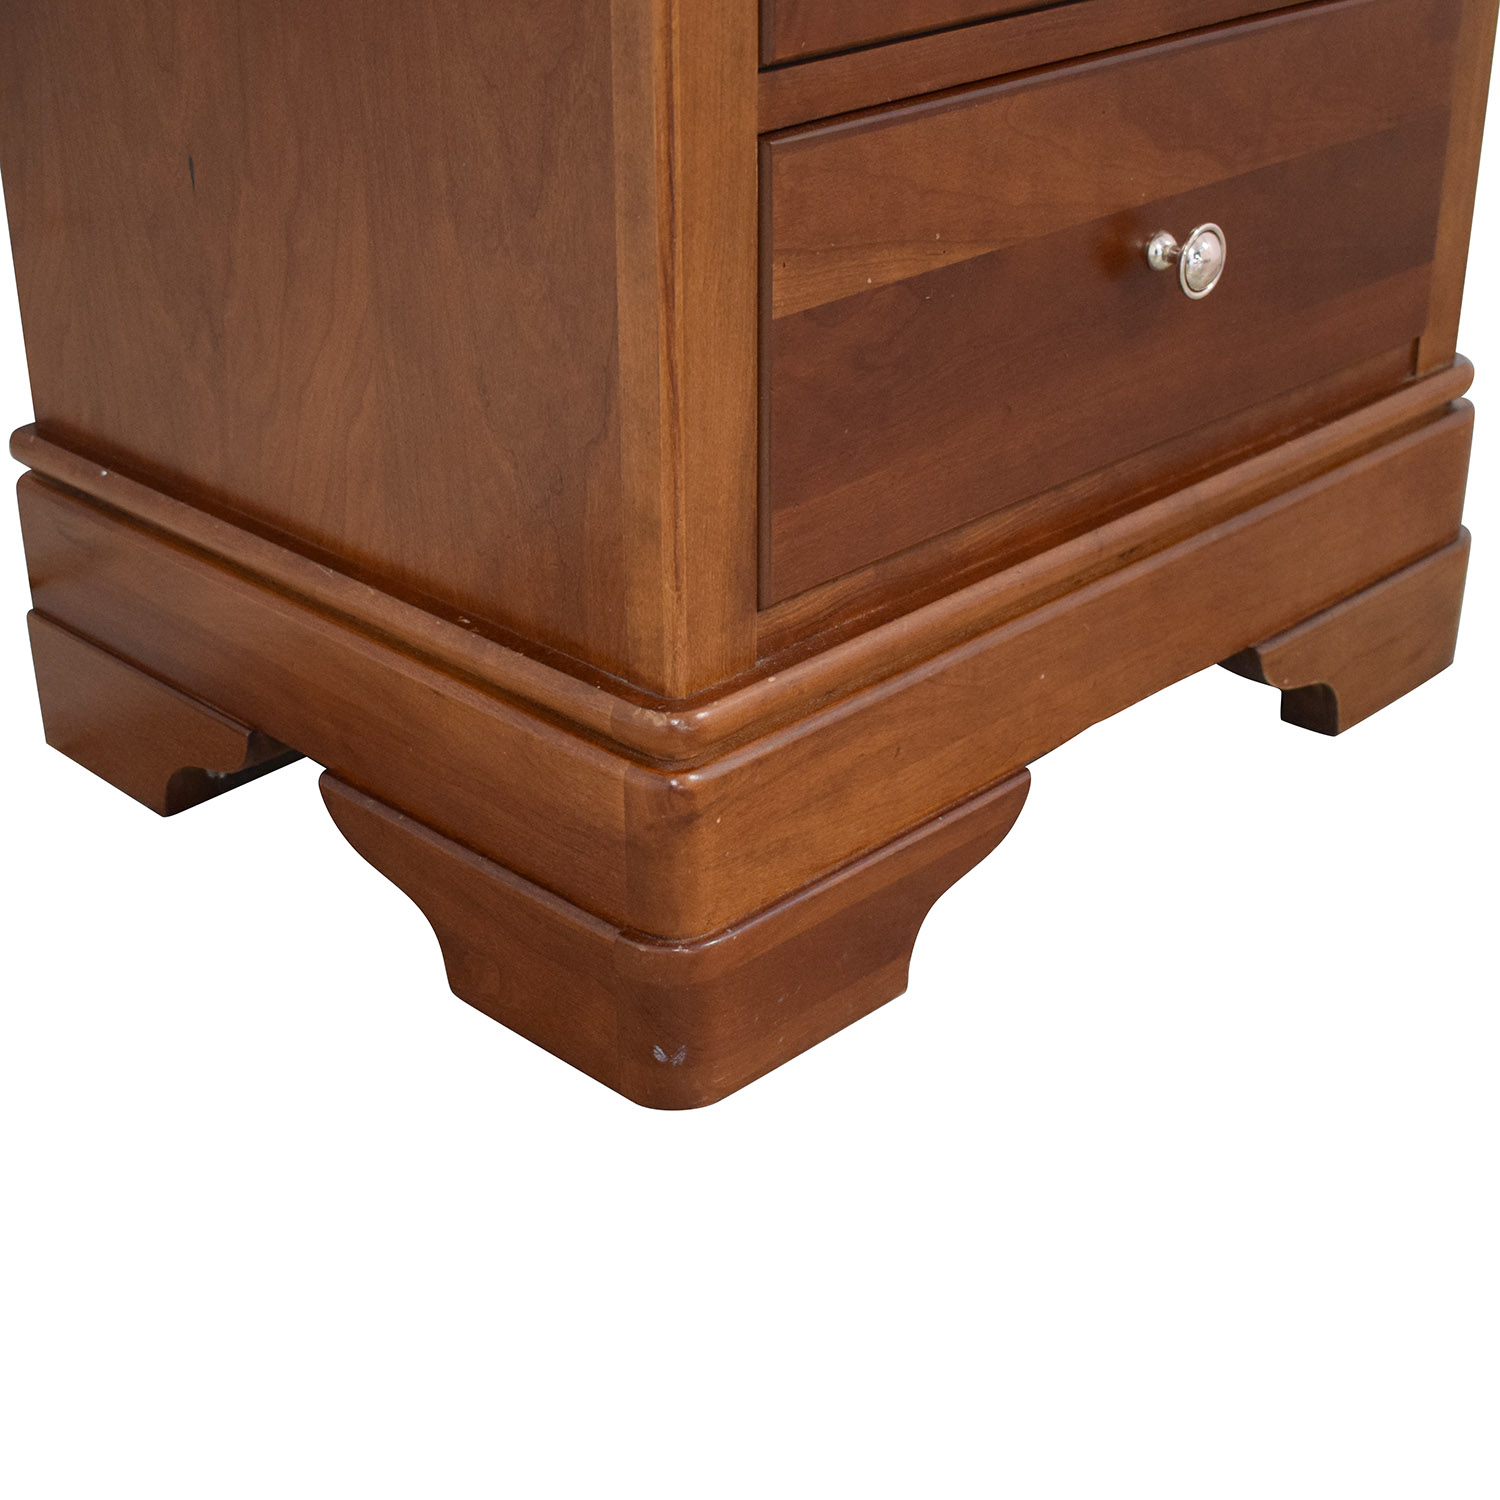 Stanley Furniture Stanley Furniture Nightstand with Mirror for sale